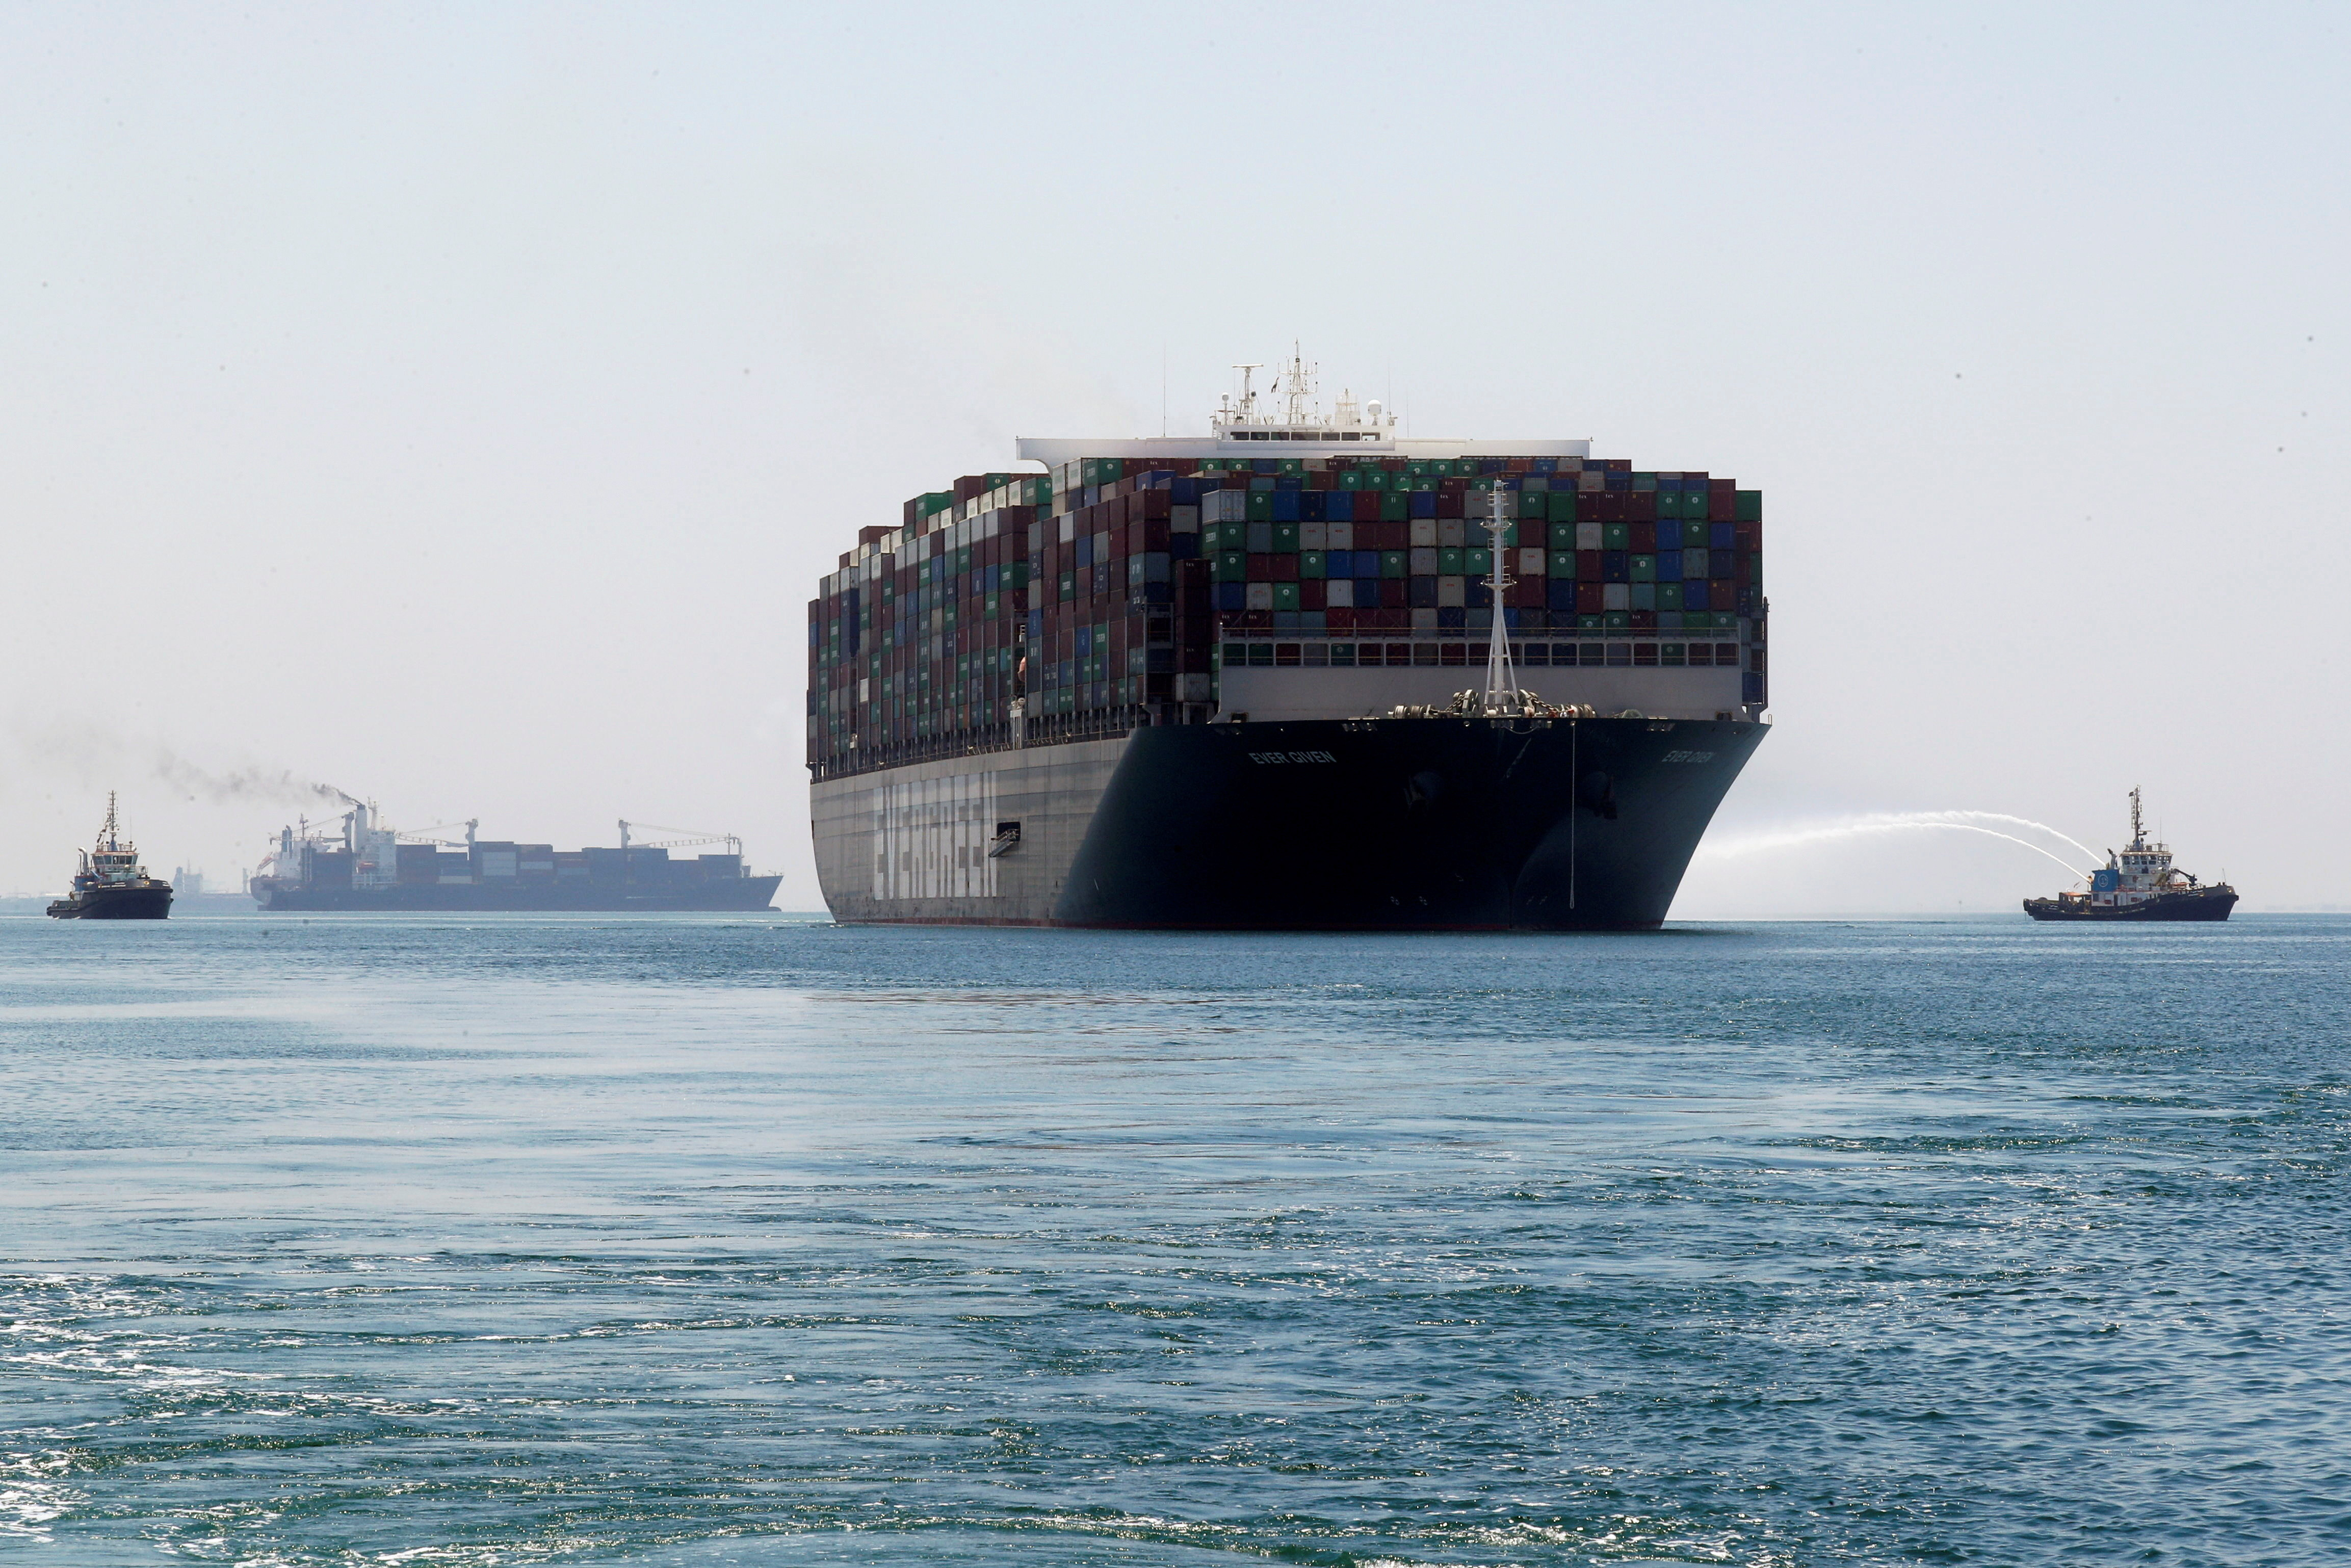 a picture of a large cargo ship full of containers representing supply chains